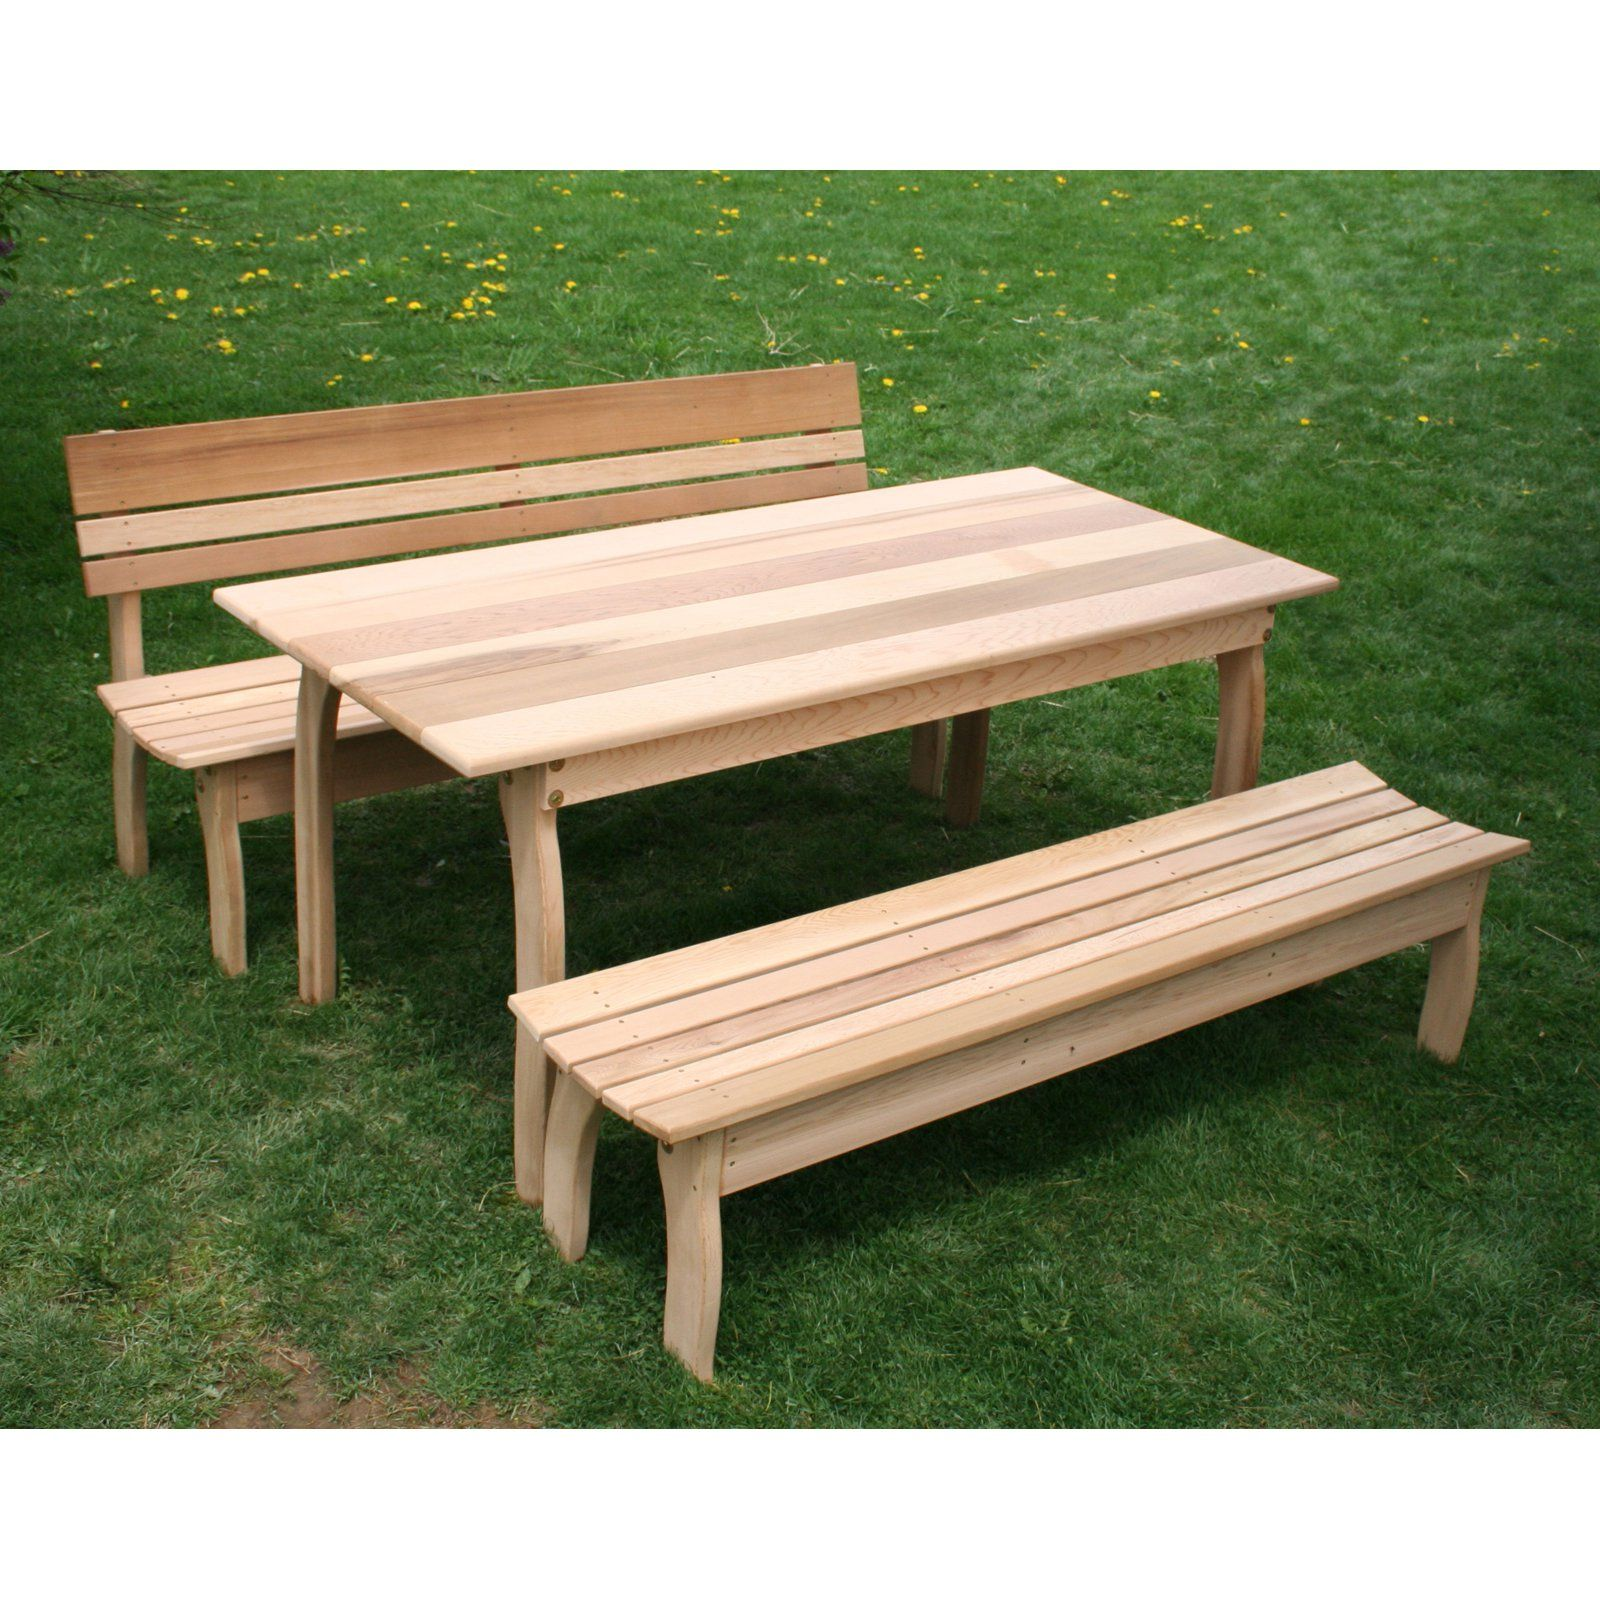 Outdoor Creekvine Designs Odd Couple Cedar Picnic Table Set Patio Furniture Sets Dining Set Picnic Table